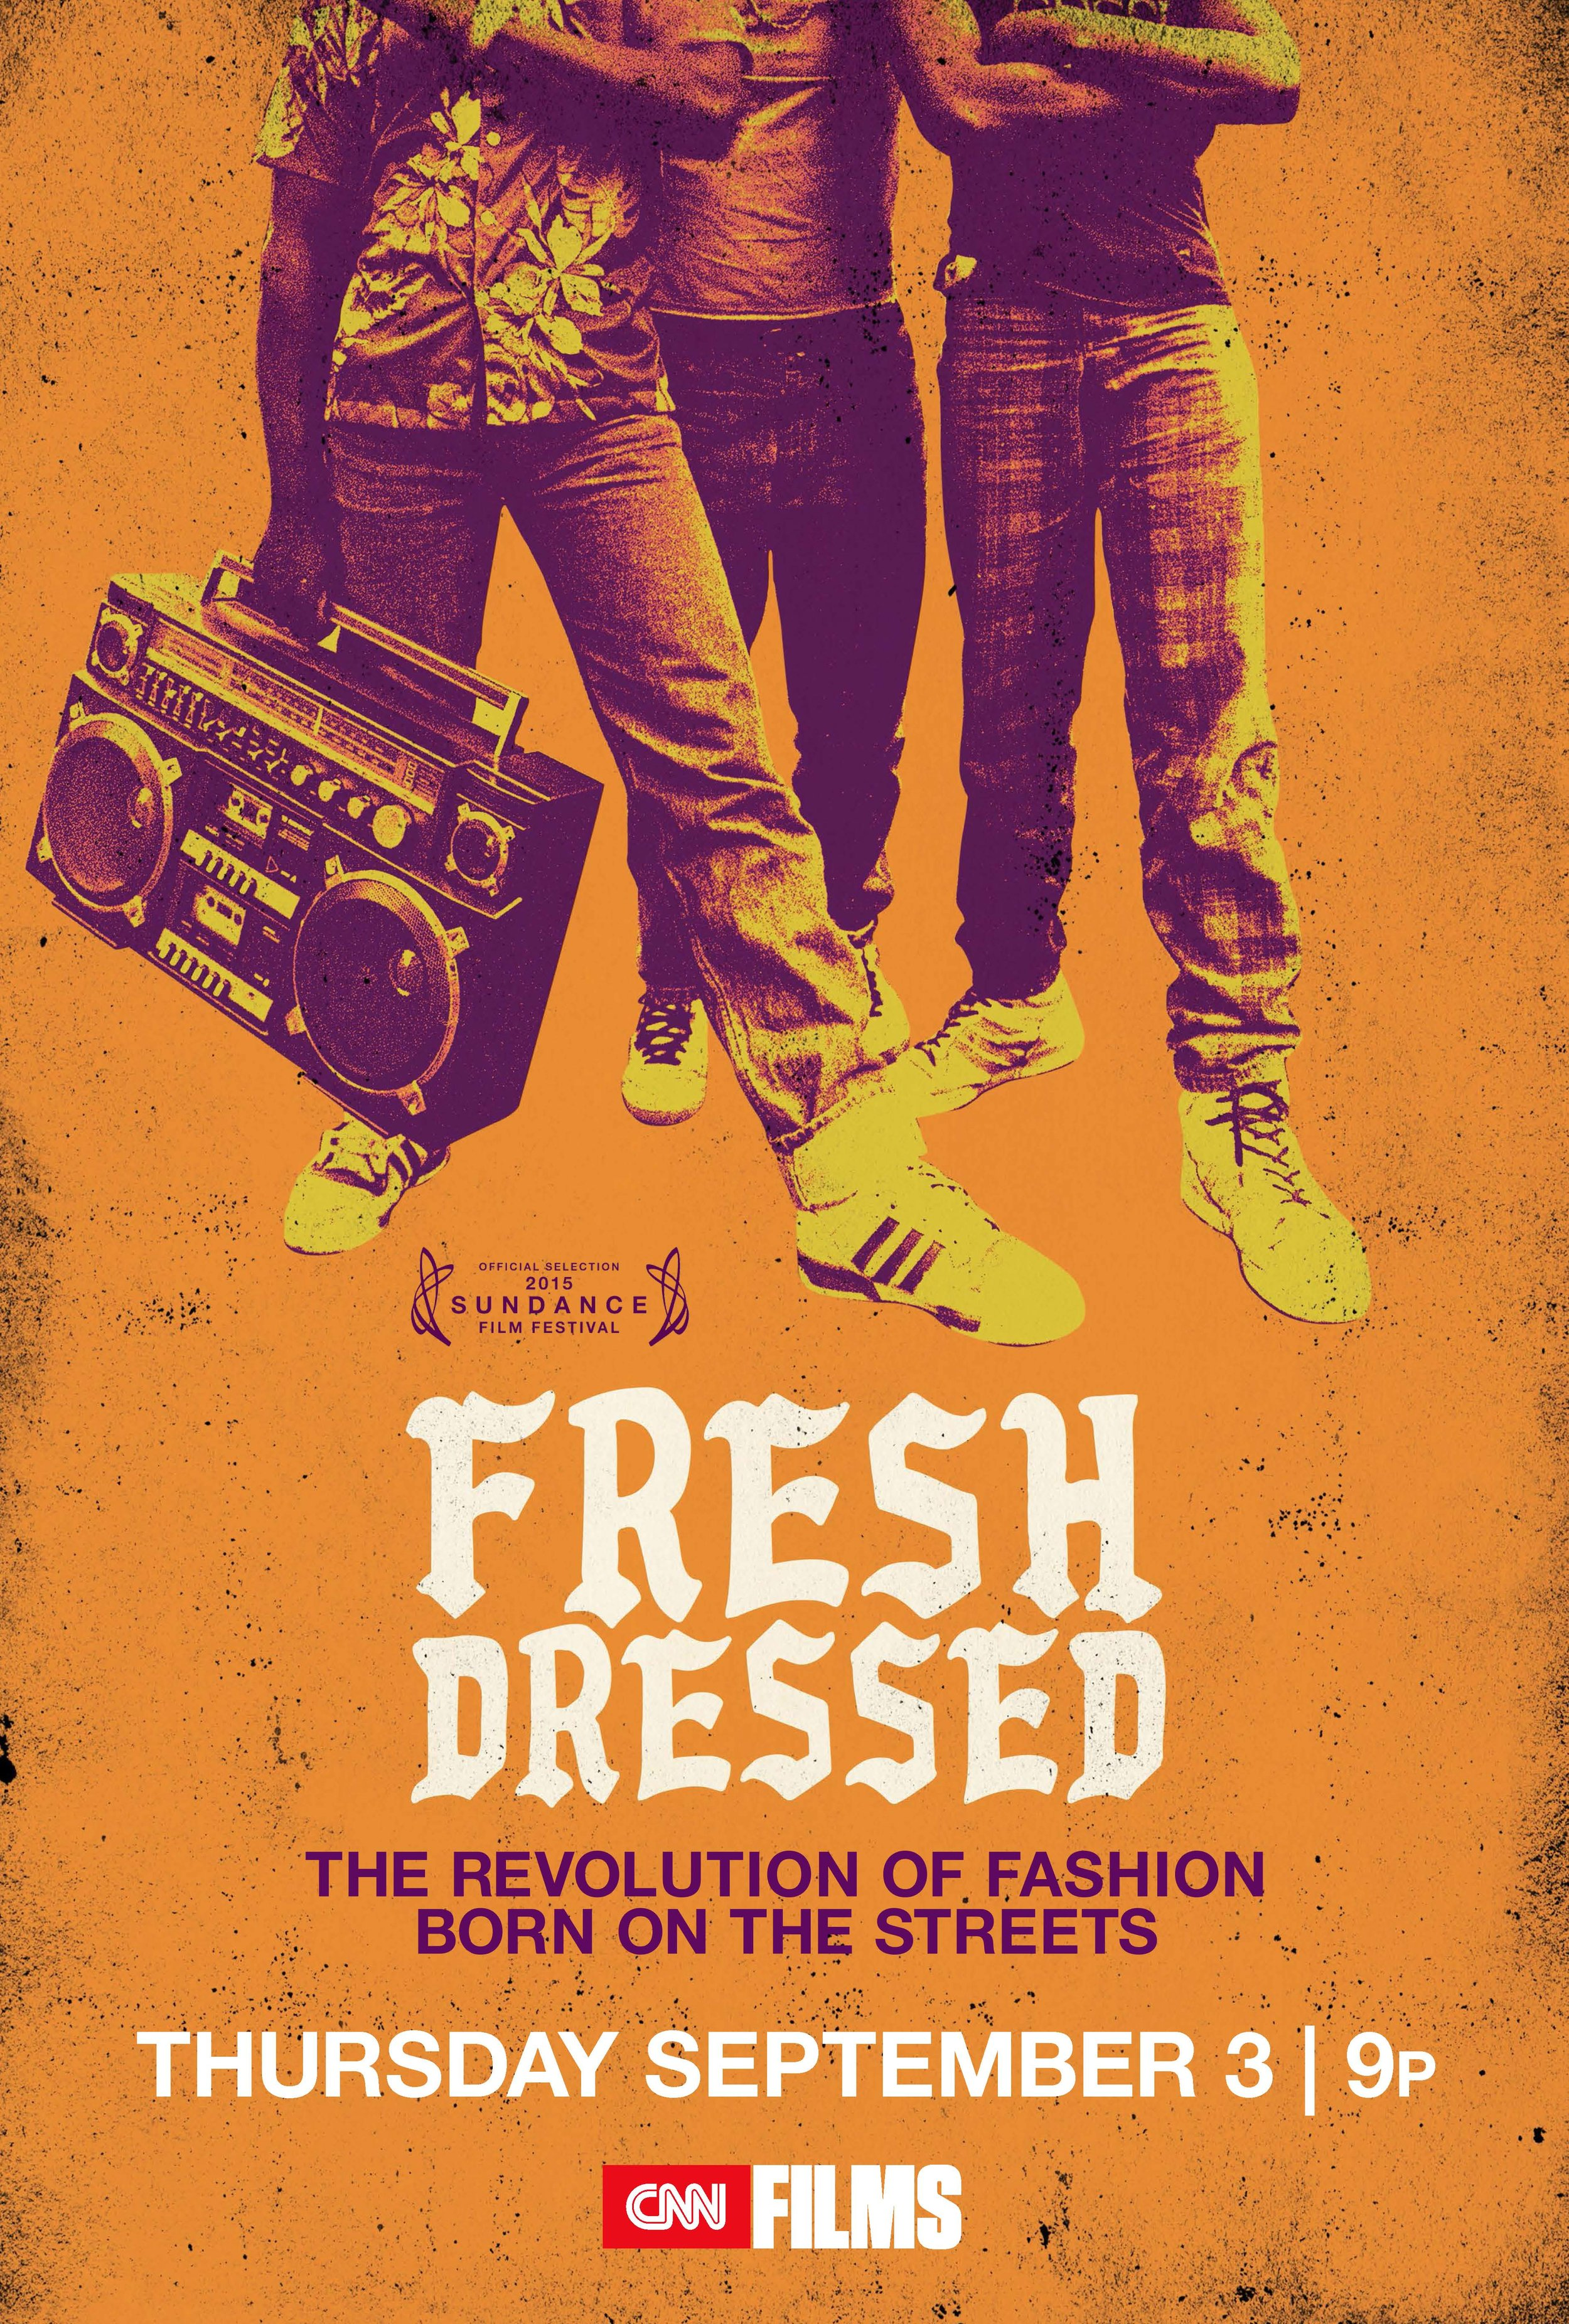 """Fresh Dressed - is a fascinating chronicle of hip-hop, urban fashion, and the hustle that brought oversized pants and graffiti-drenched jackets from Orchard Street to high fashion's catwalks and Middle America shopping malls. Director Sacha Jenkins' music-drenched history draws from a rich mix of archival materials and in-depth interviews with rappers, designers, and other industry insiders.Featuring Kanye West, Pharrell Williams, Sean """"Puffy"""" Combs, Nas, Pusha T, Swizz Beatz, Damon Dash, André Leon Talley, A$AP Rocky, Marc Ecko, Big Daddy Kane, Kid 'N Play & many others.Sundance Film Festival World Premiere: Jan 24th 2015Broadcast Premiere: June 26th 2015 CNN FILMSDirected By Sacha JenkinsProduced By Marcus A. ClarkeTap poster view trailer"""